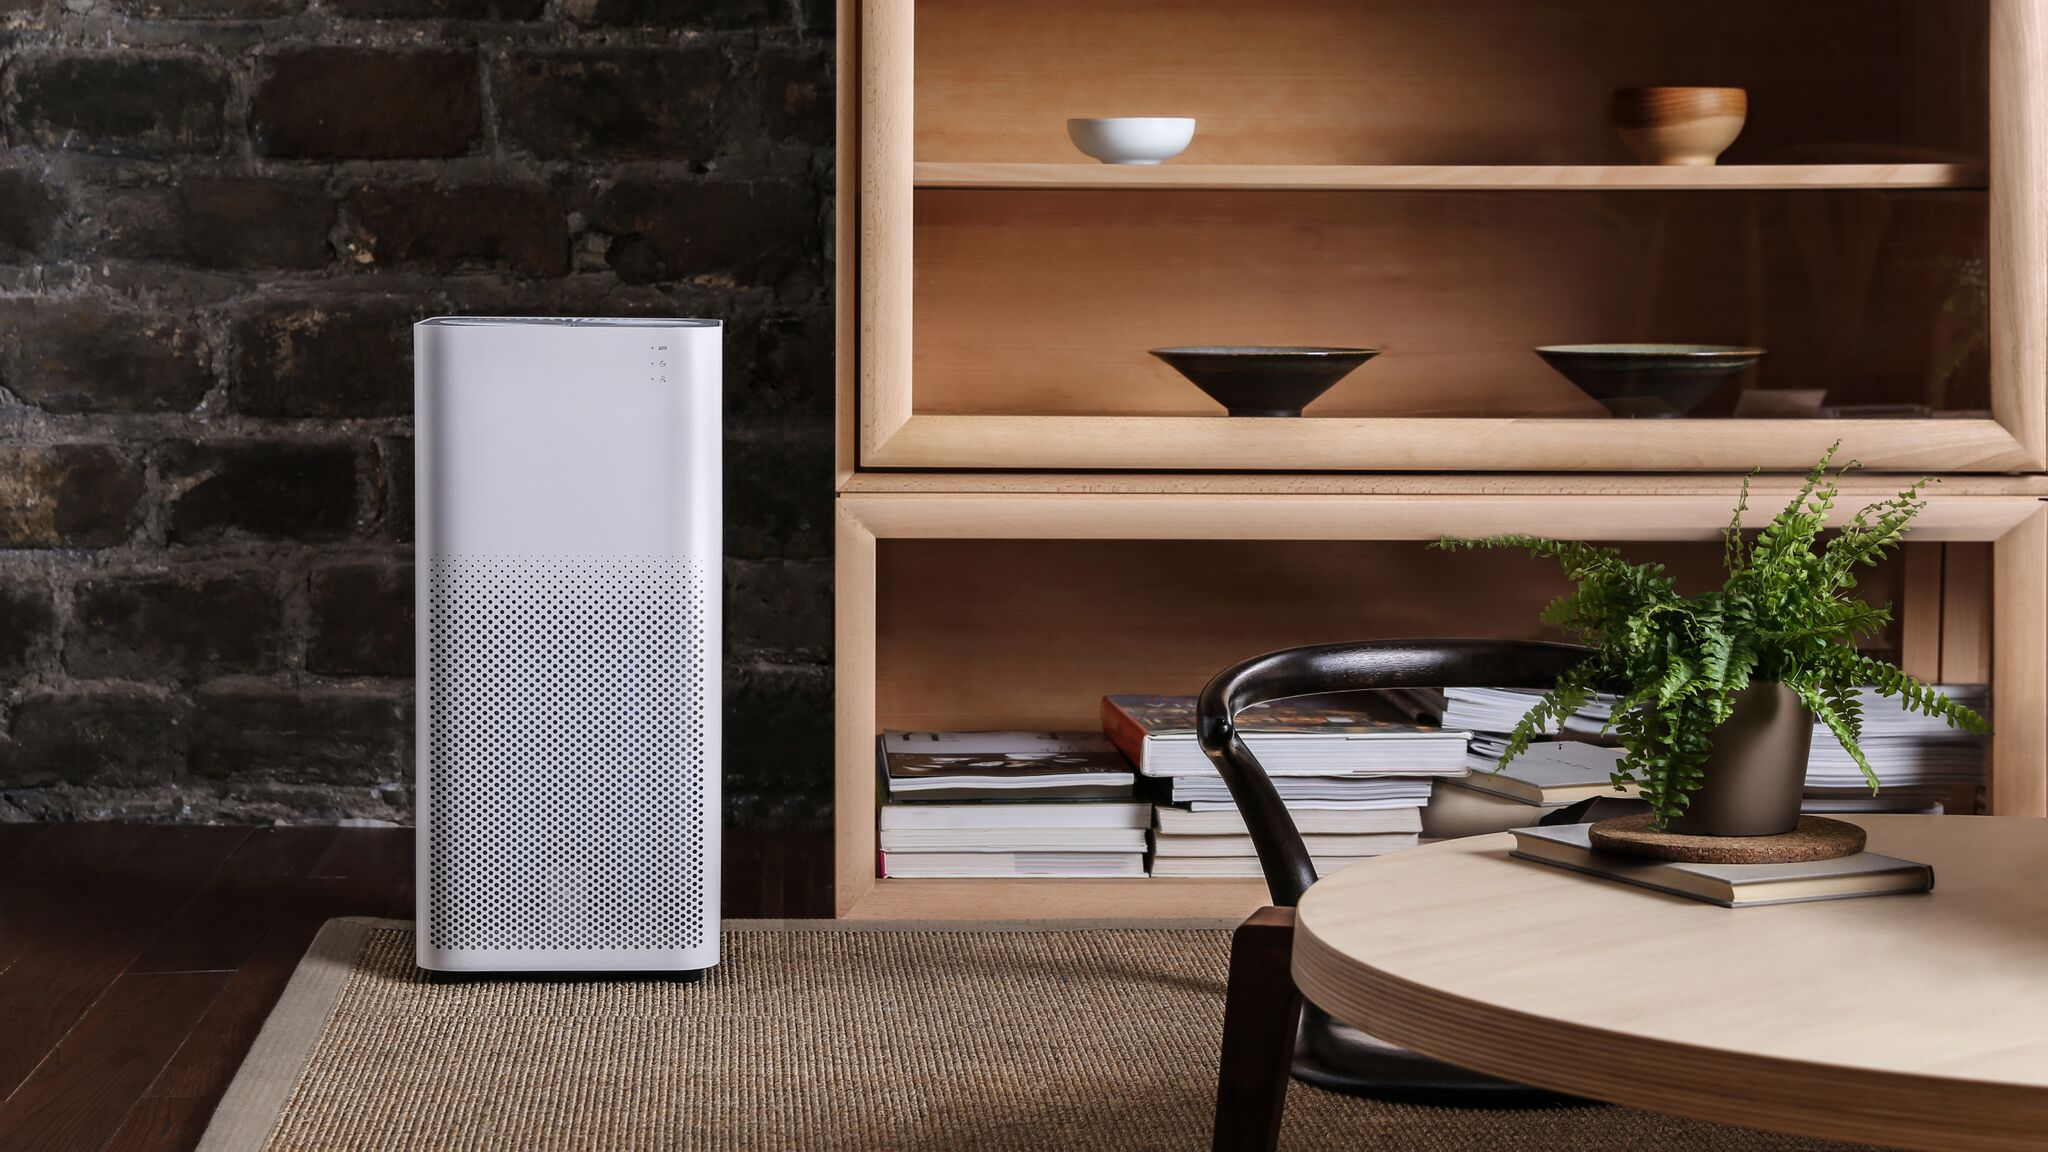 xiaomi-air-purifier-2